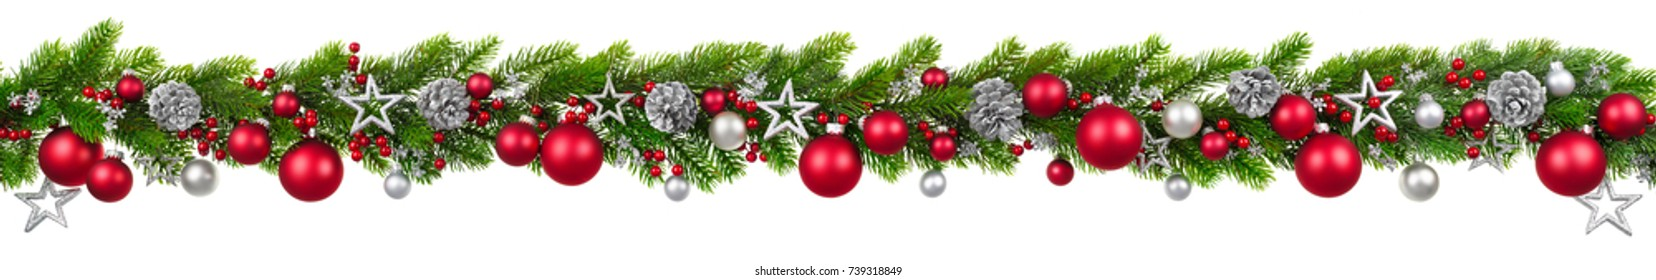 Photo of Extra wide Christmas border with hanging garland of fir branches, red and silver baubles, pine cones and other ornaments, isolated on white